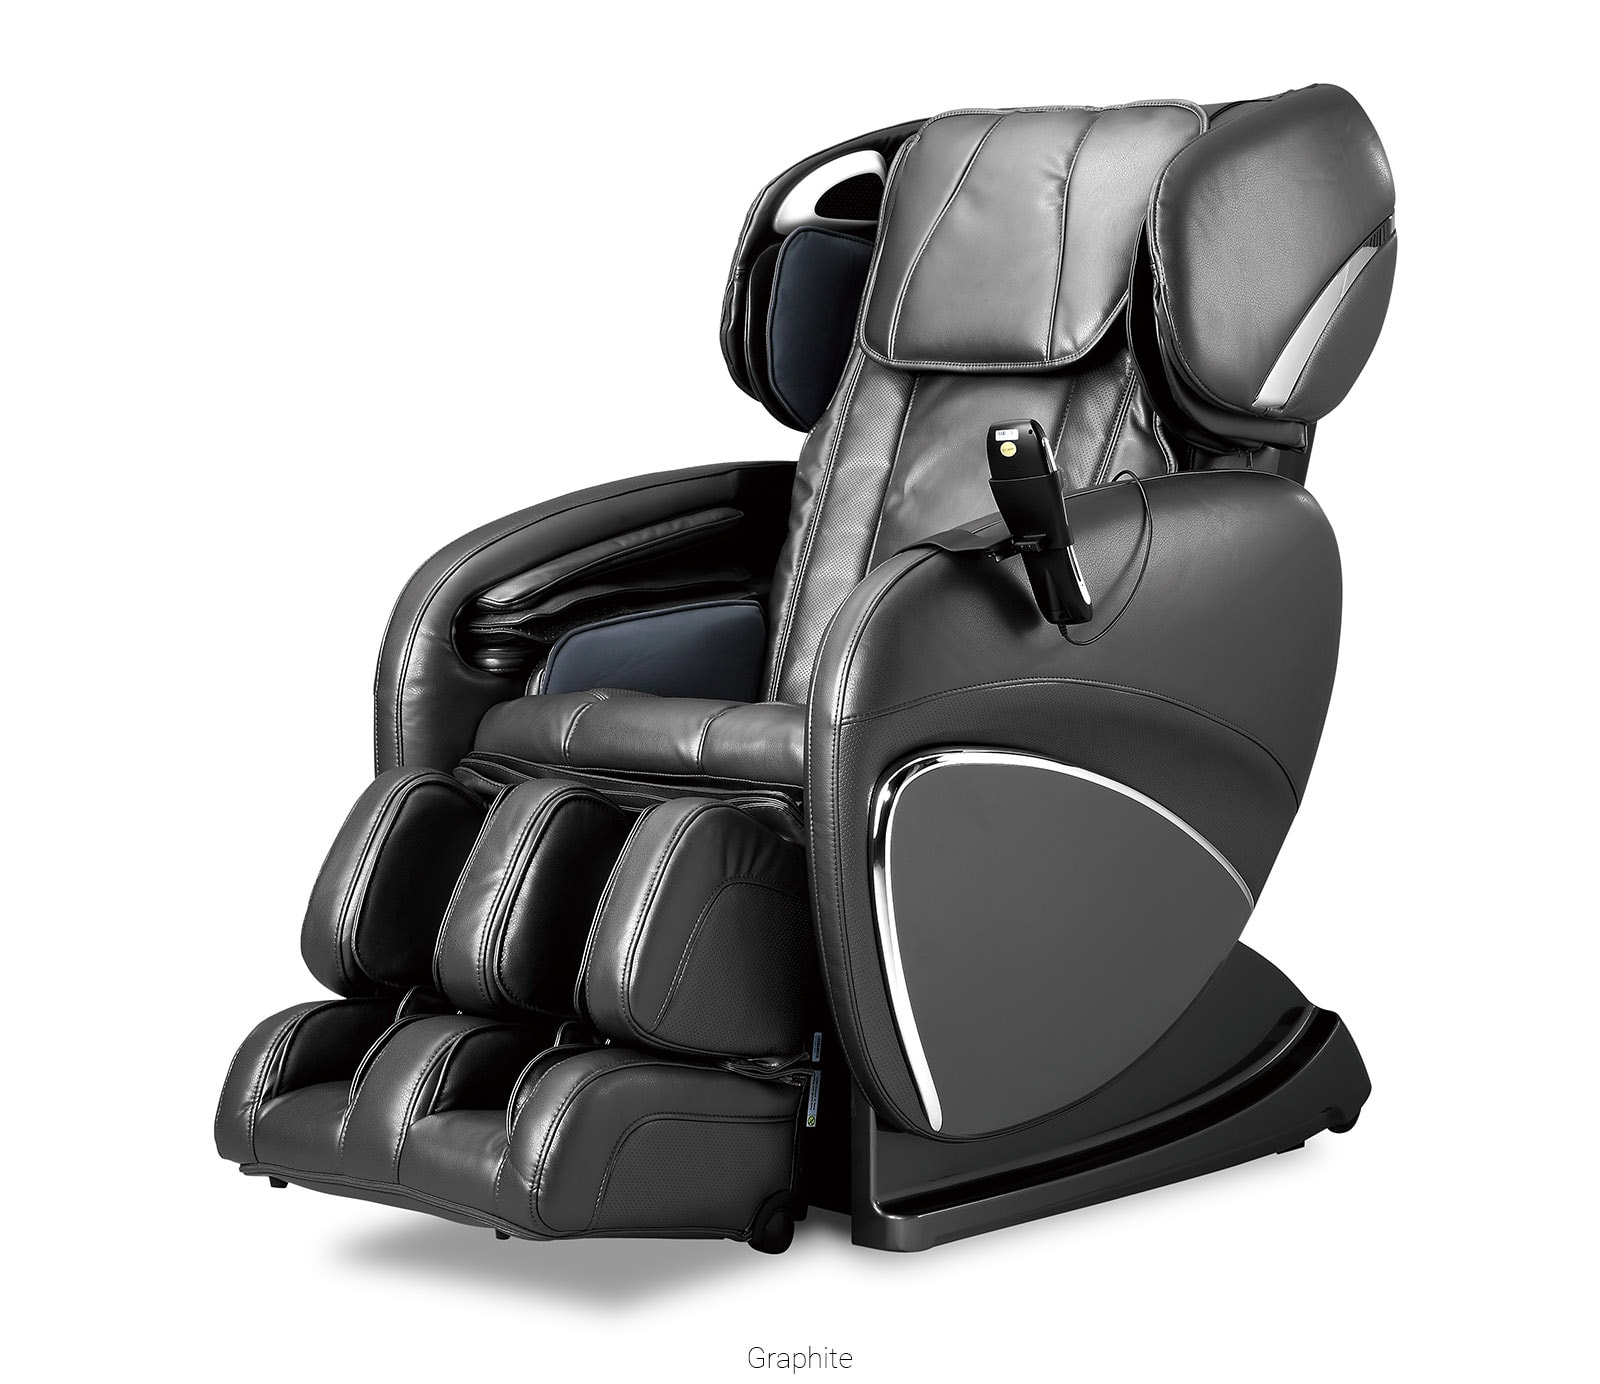 Cozzia Massage Chairs Ec 618 Perfect Massage Chair With Advanced Technology